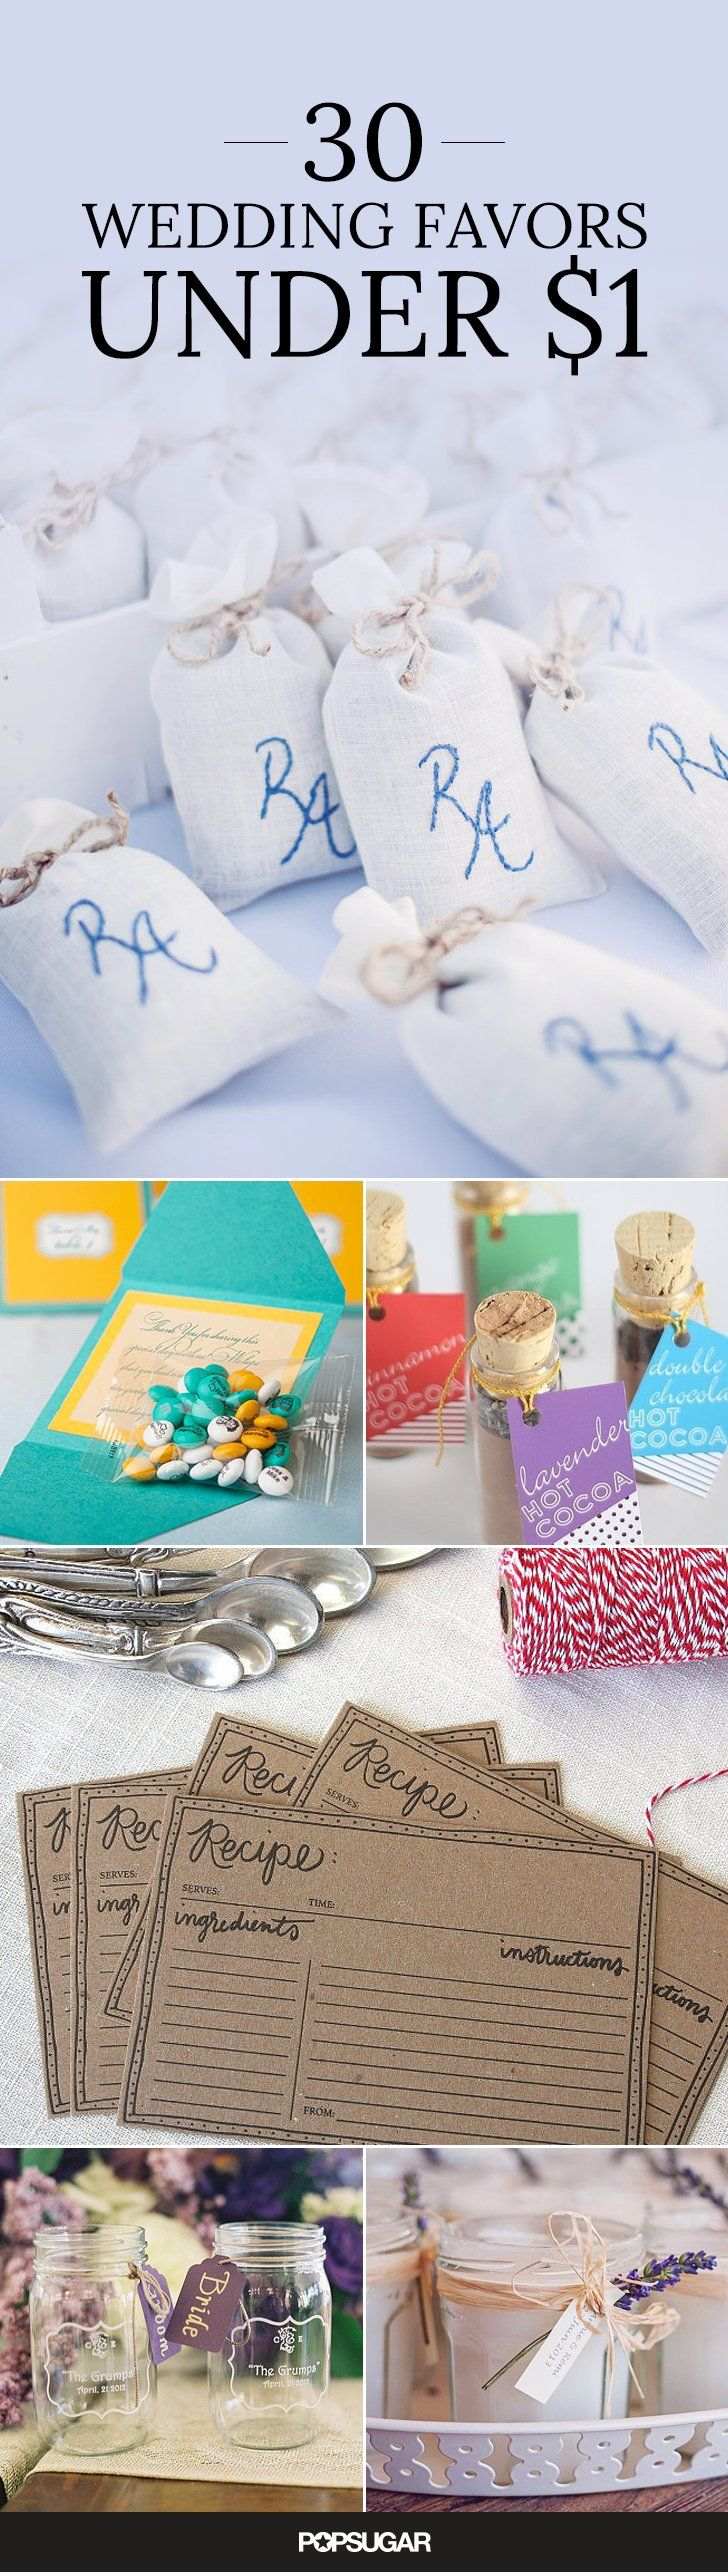 Pin for Later: 30 Wedding Favors You Won't Believe Cost Under $1